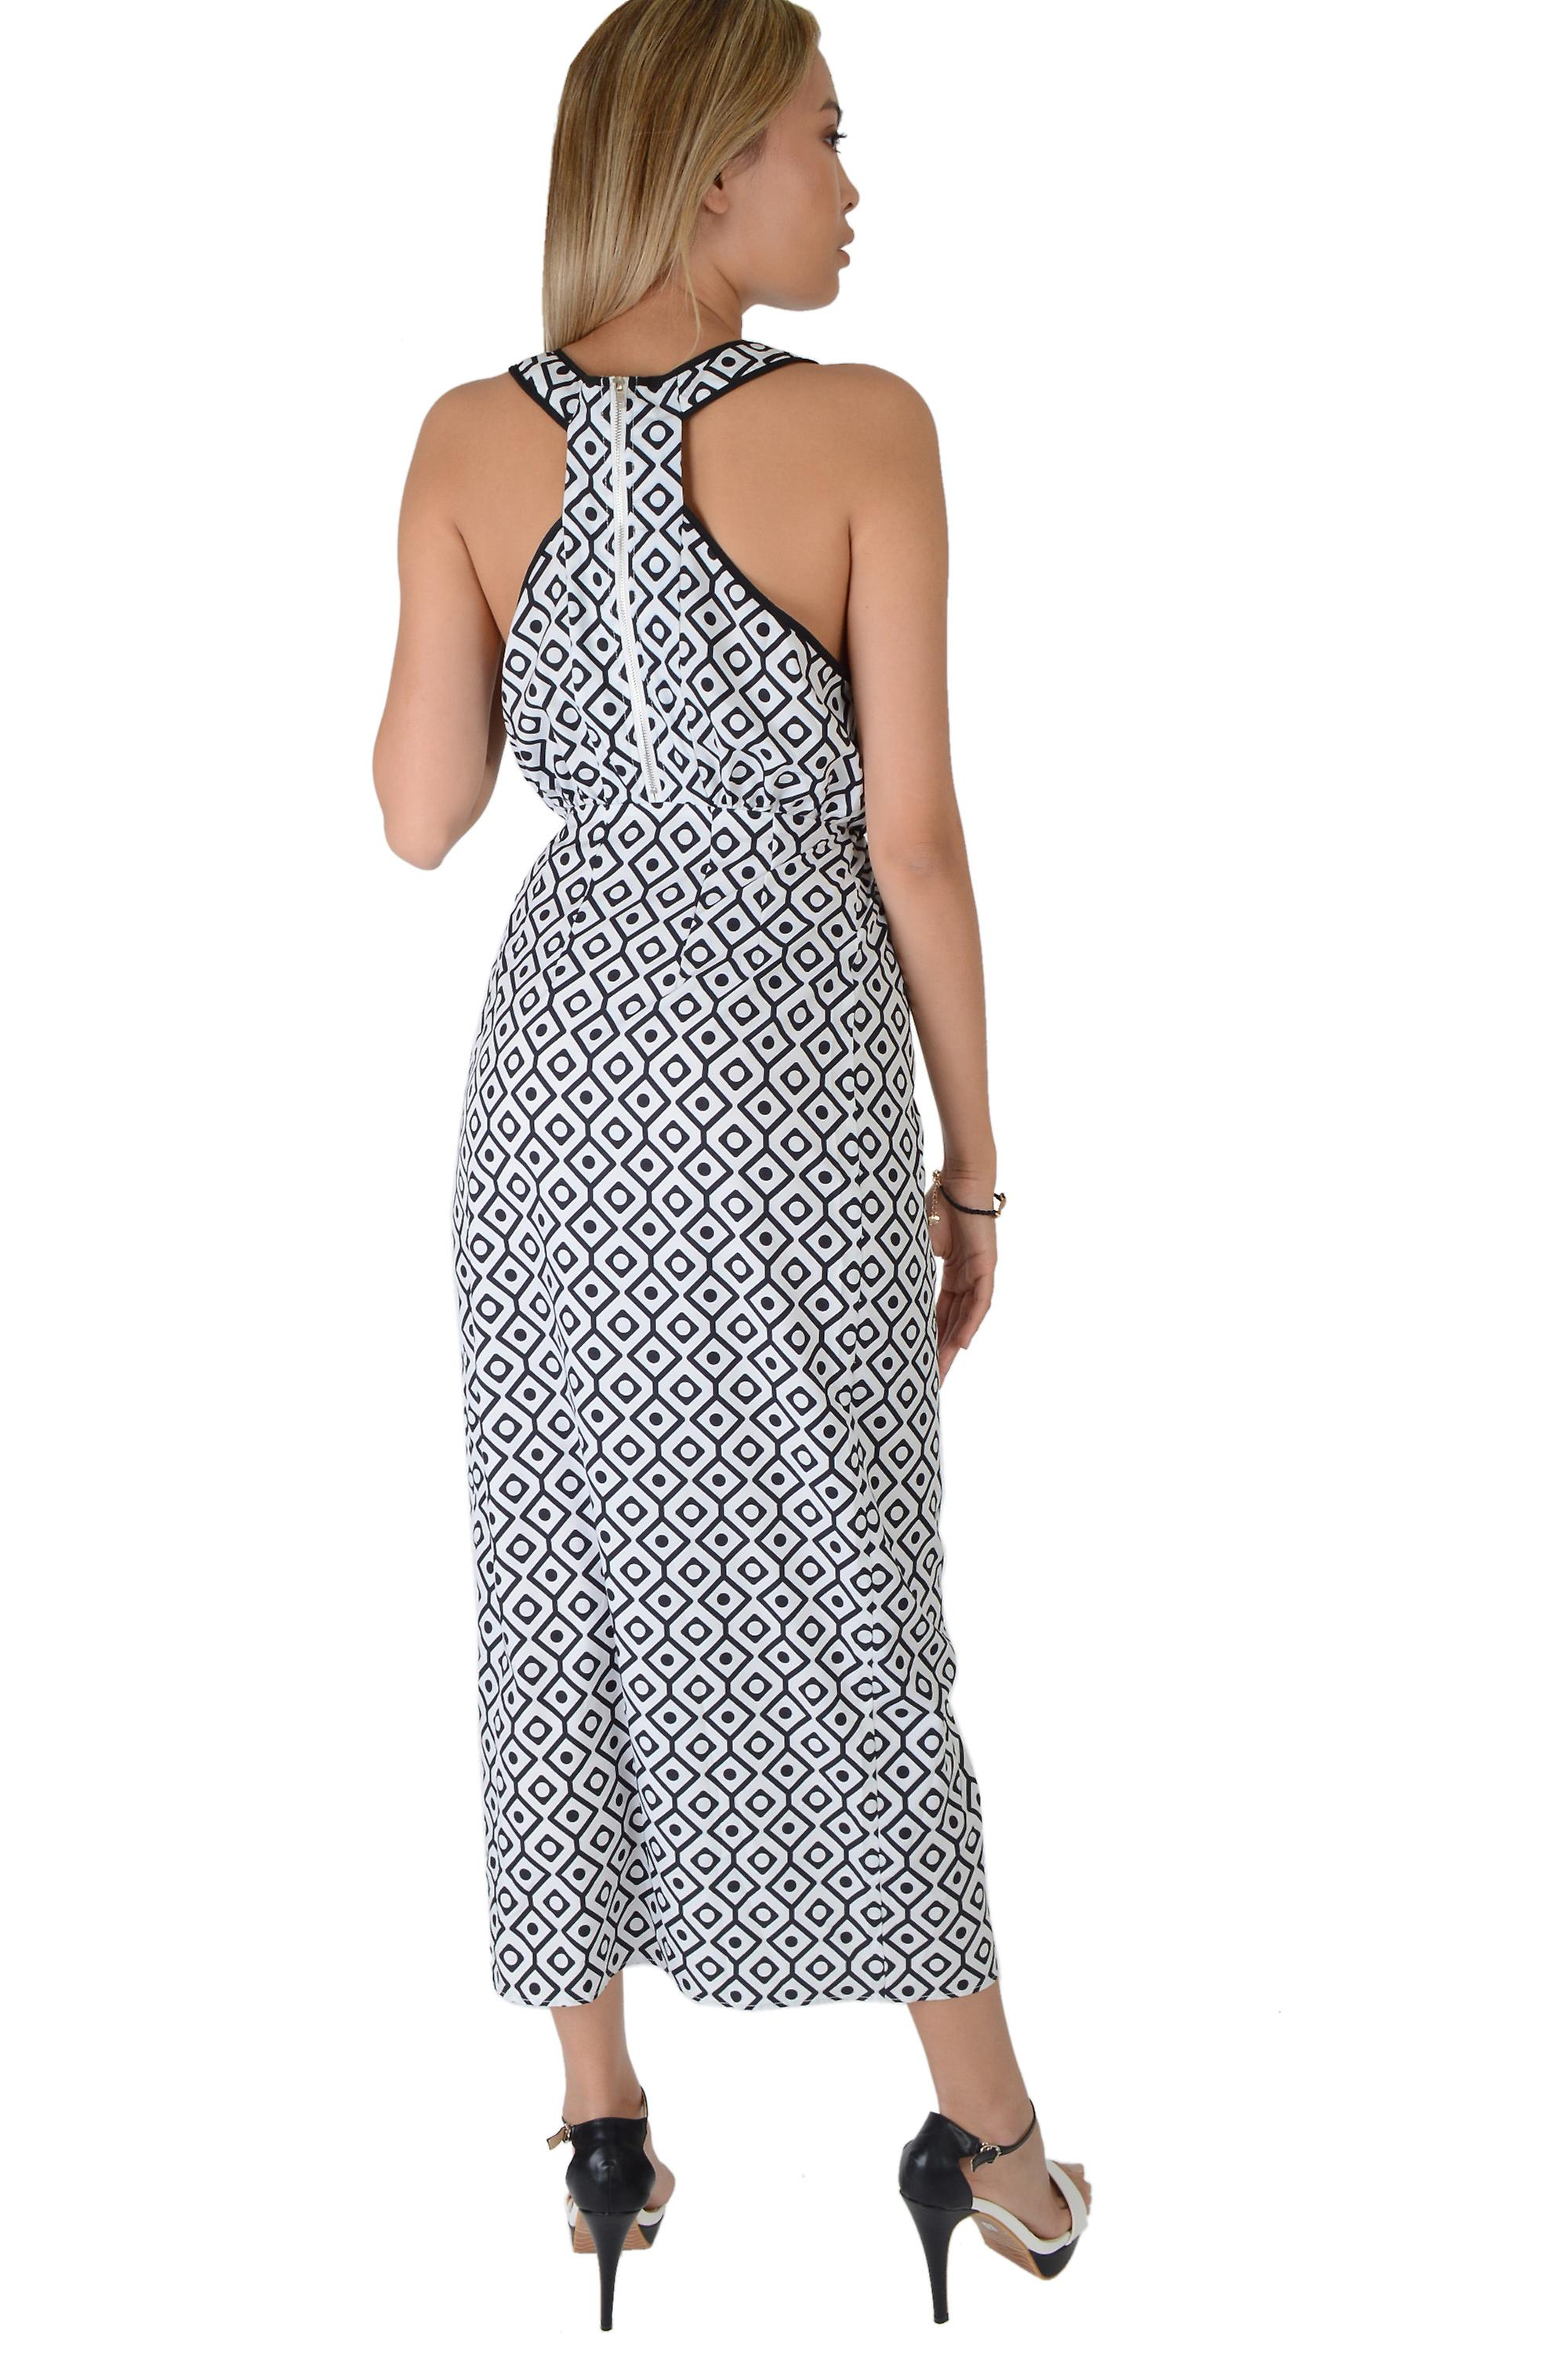 LMS White And Blue Geometric Maxi Dress With Racer Back - SAMPLE